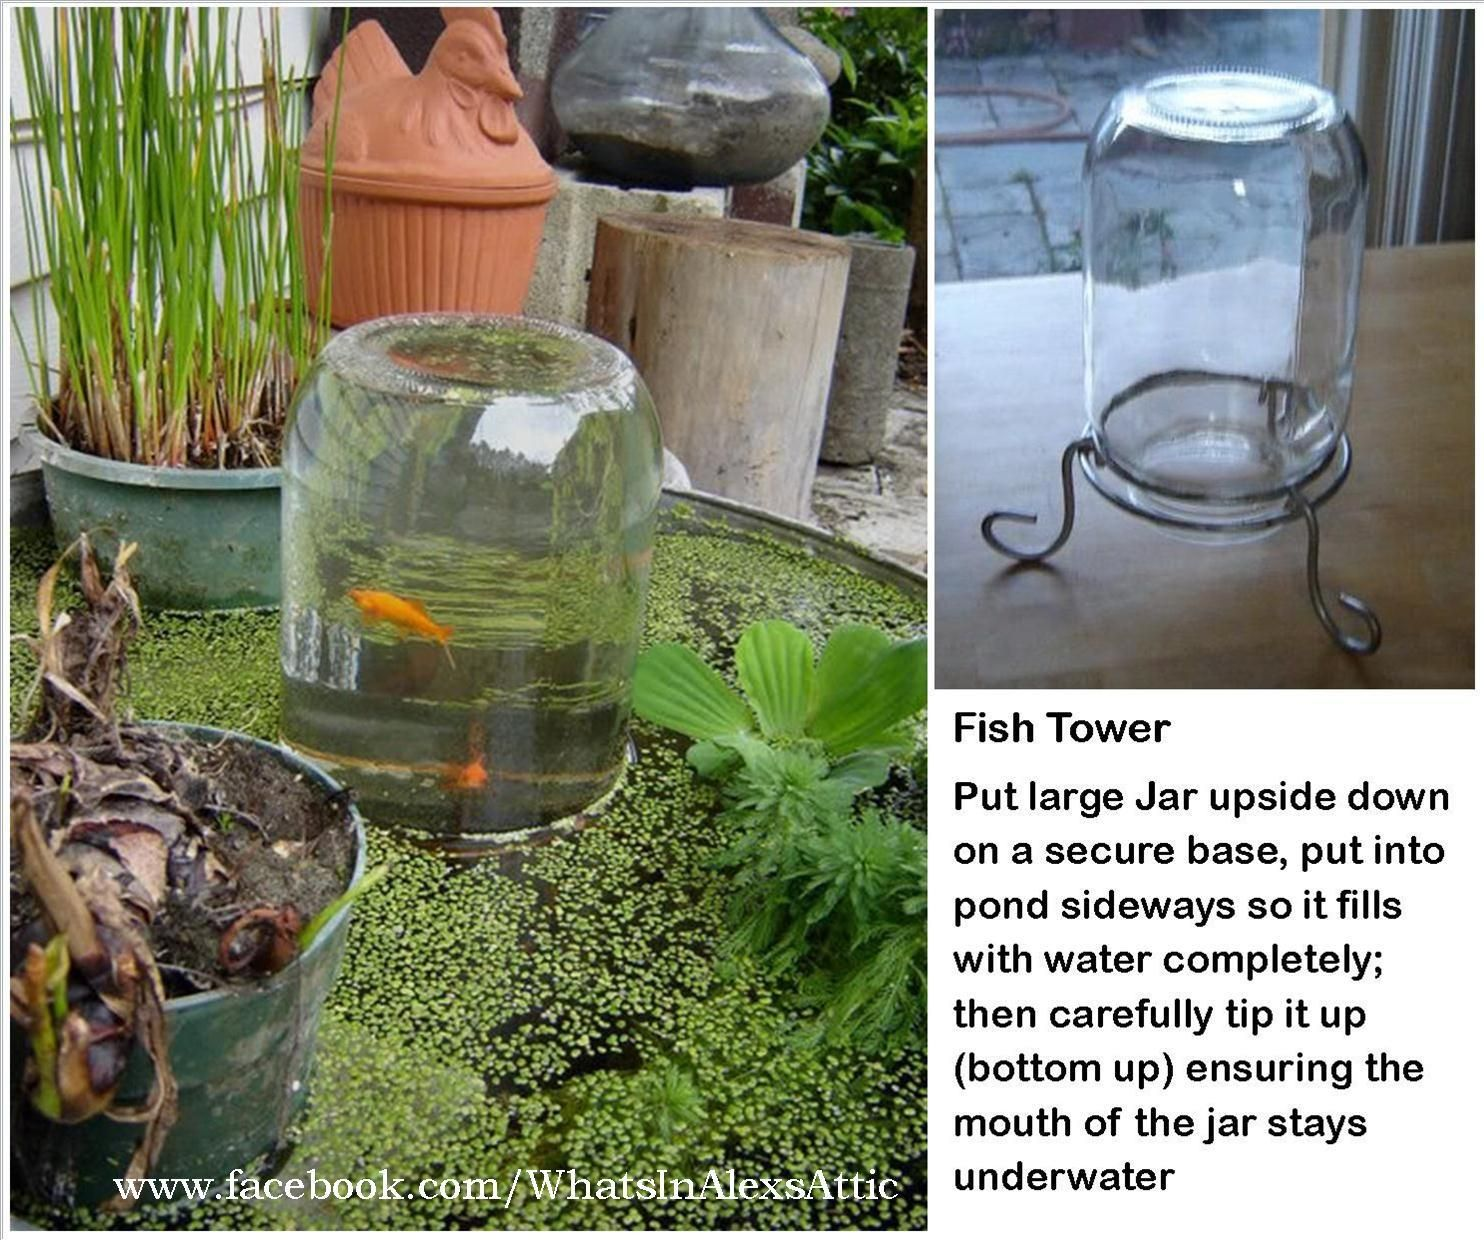 Fish dome groovy outdoor ideas pinterest fish ponds and gardens